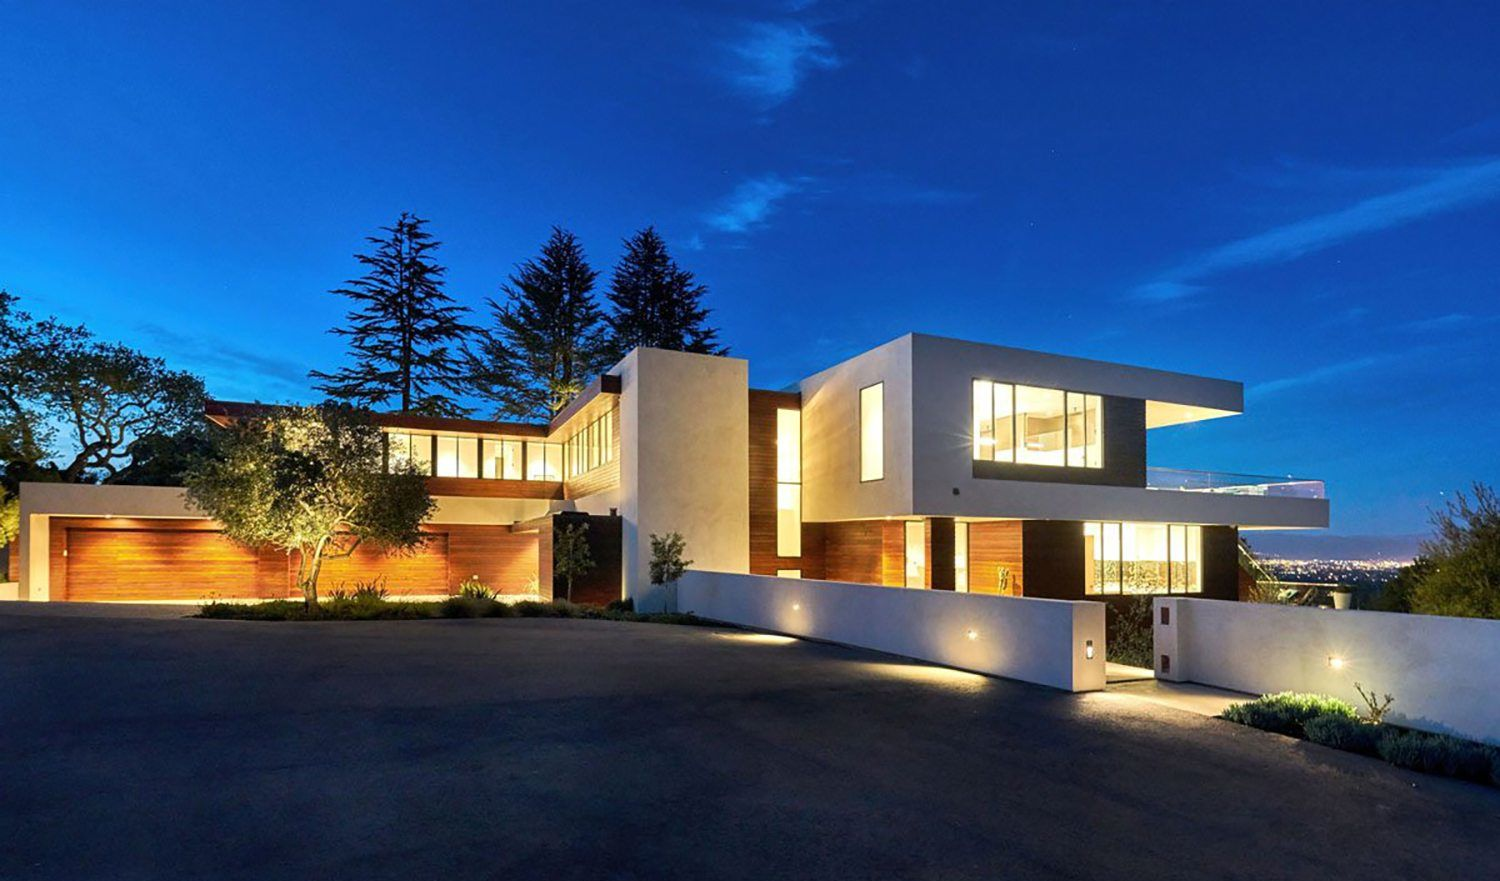 Extraordinary Home Of The Week: Silicon Valley Modern Masterpiece